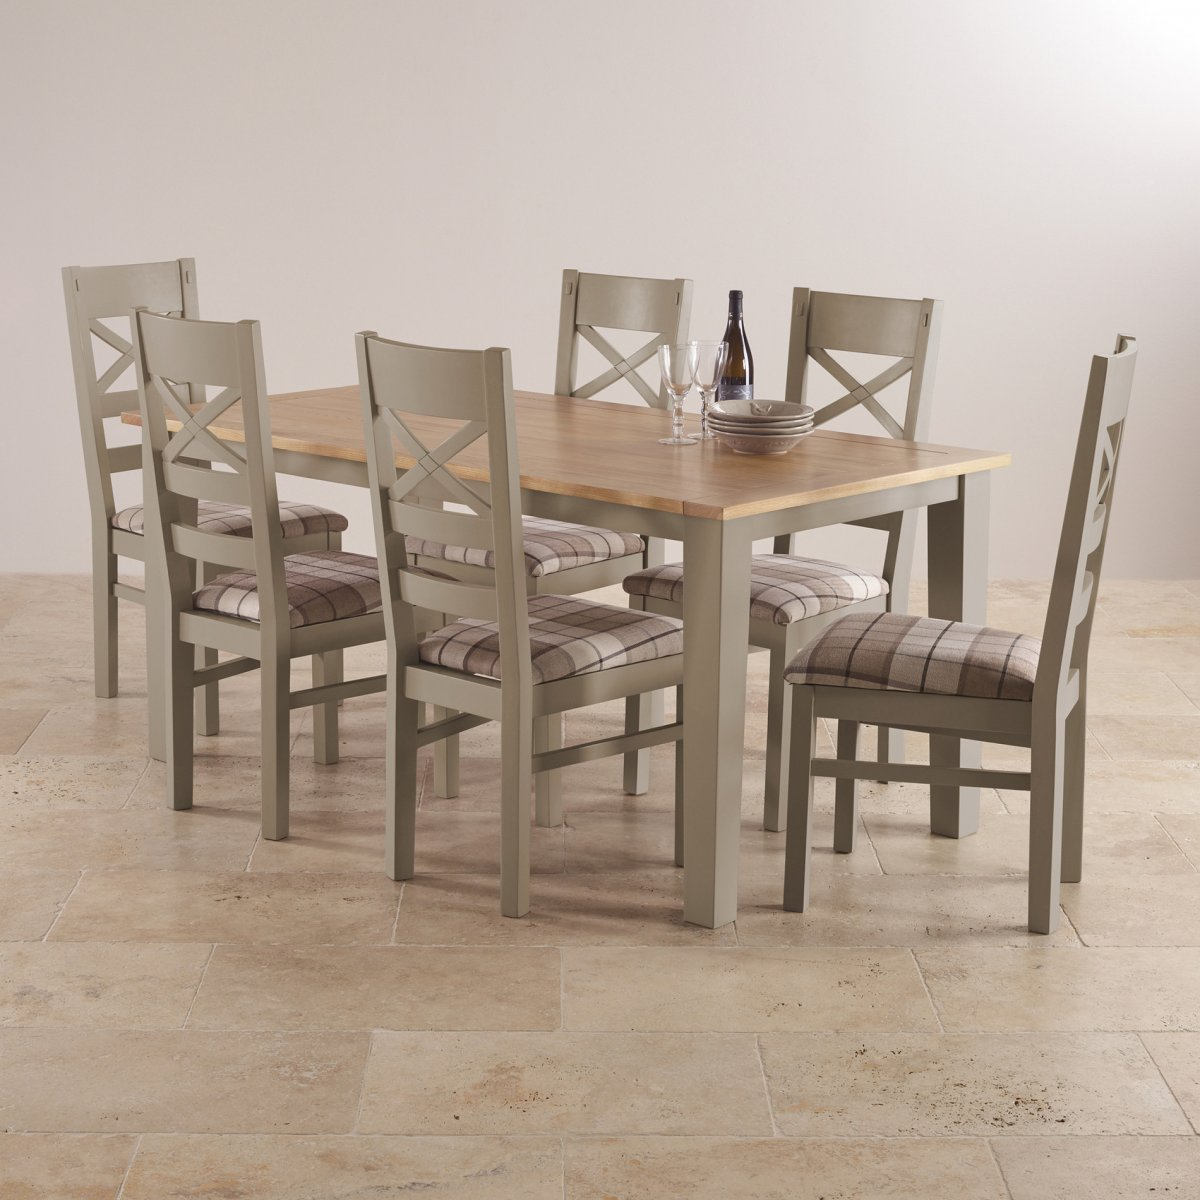 Light Oak Dining Table And Chairs Light Oak Dining Table  : st ives natural oak and light grey painted 5ft 6 dining table with 6 fabric chairs 57d2d5a96a7e07fff64e6d2dc6f237655a3680b3cf7ca from chipoosh.com size 1200 x 1200 jpeg 165kB